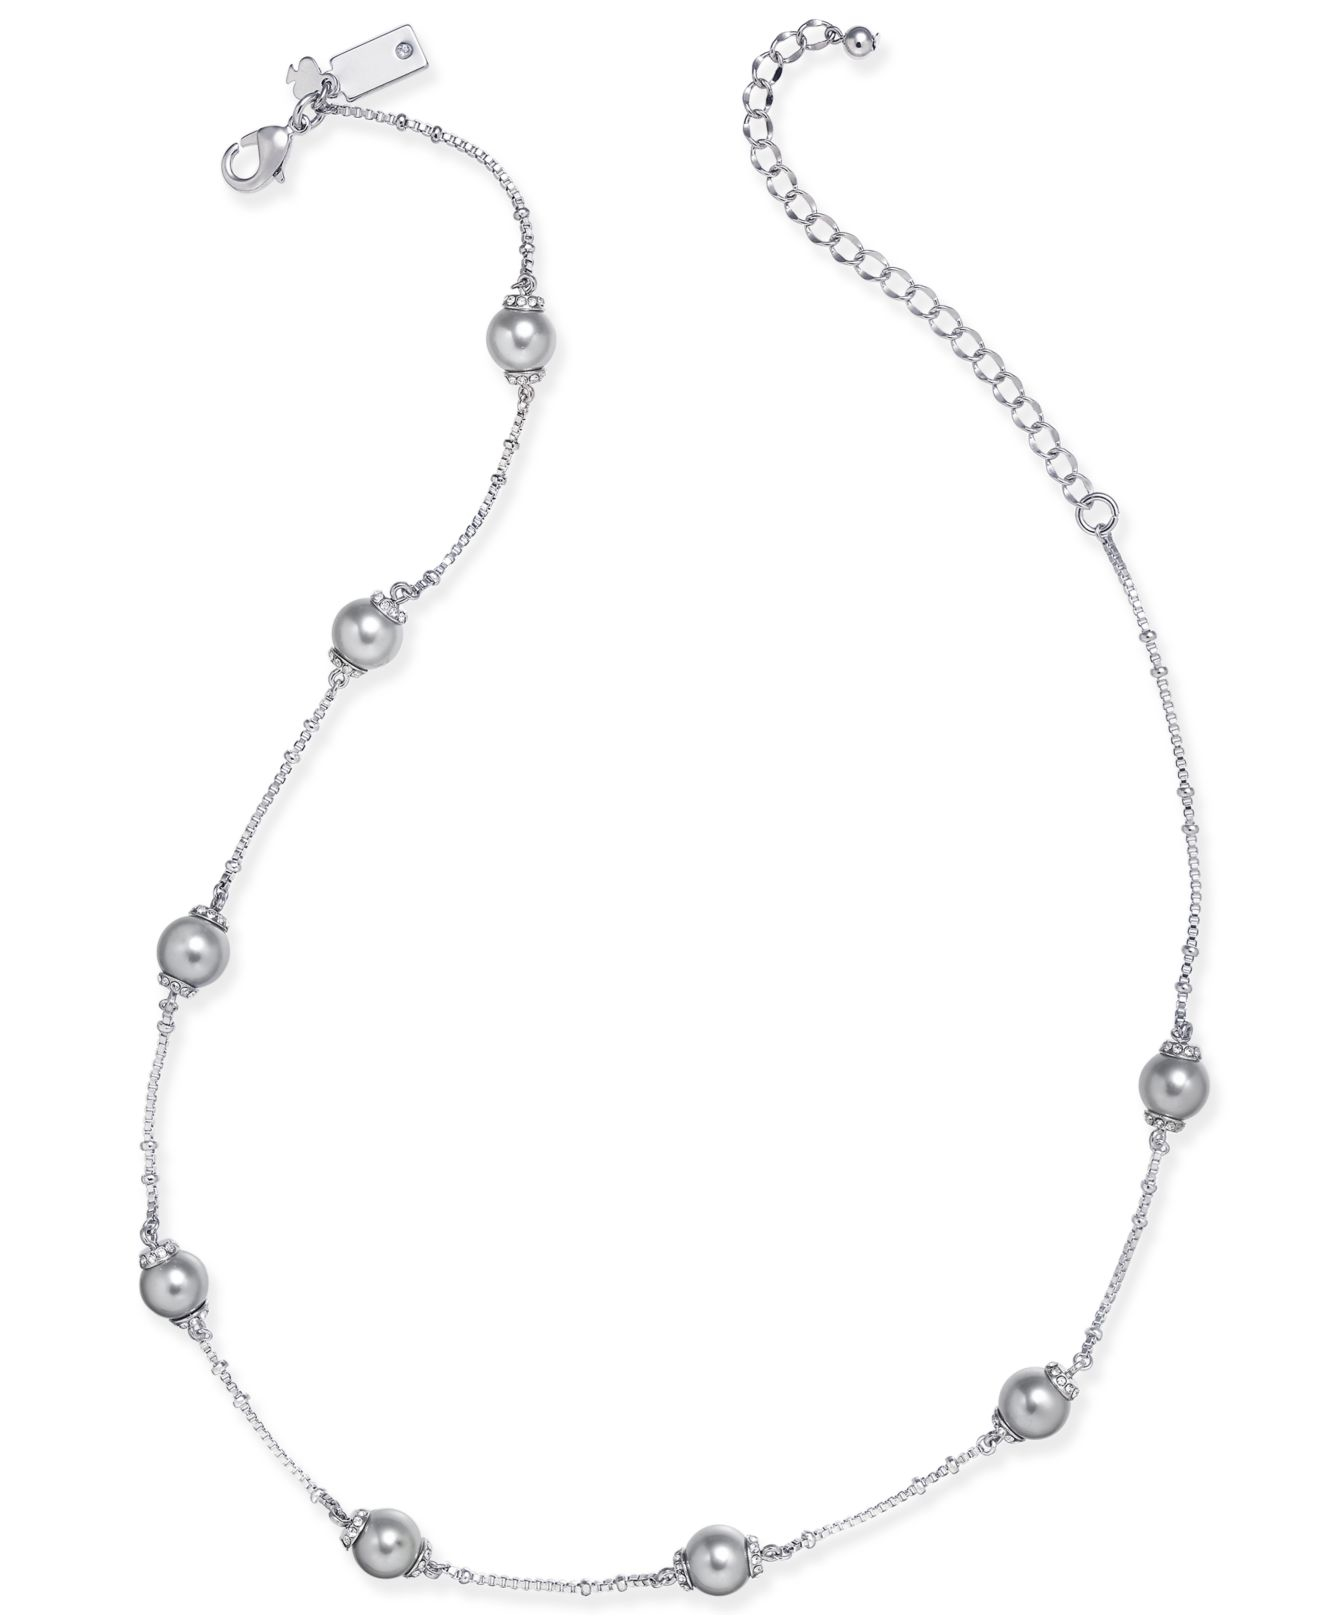 Kate Spade New York Silver Tone Imitation Pearl And Pave Scatter Collar Necklace In Grey